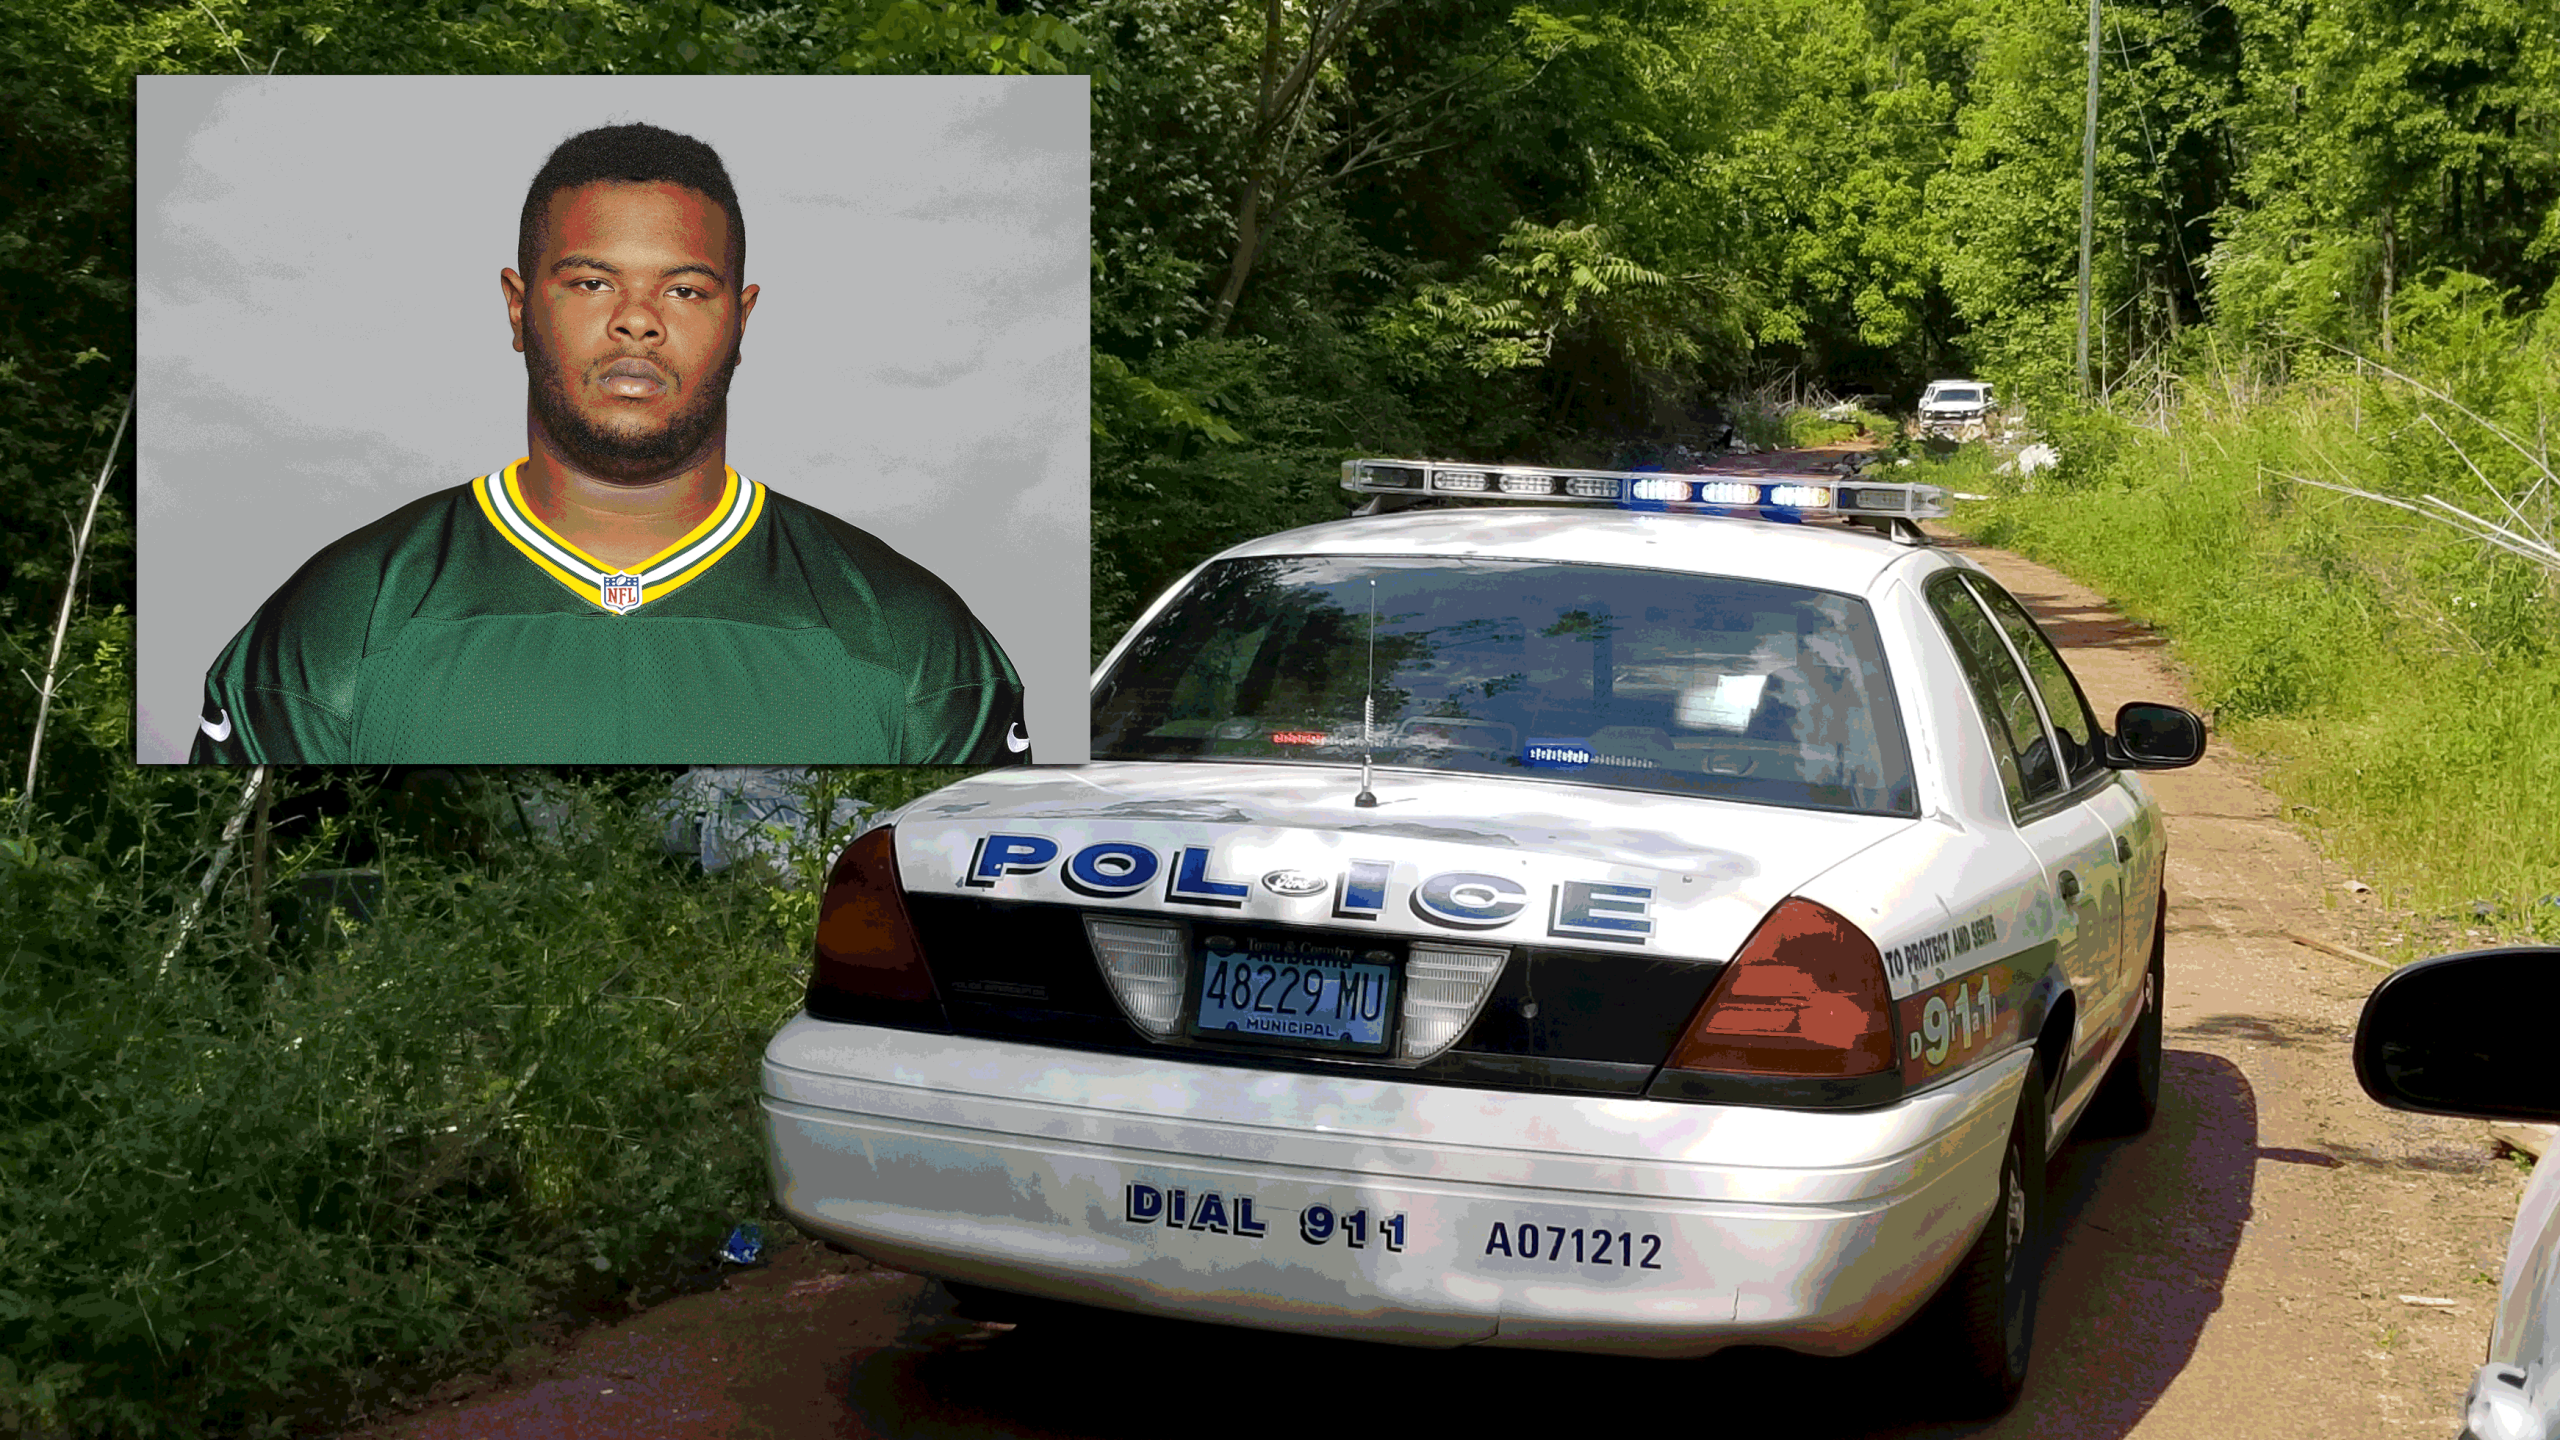 lipscomb-murder-retaliation-green-bay-packers-player_1525282715525-842137438.png